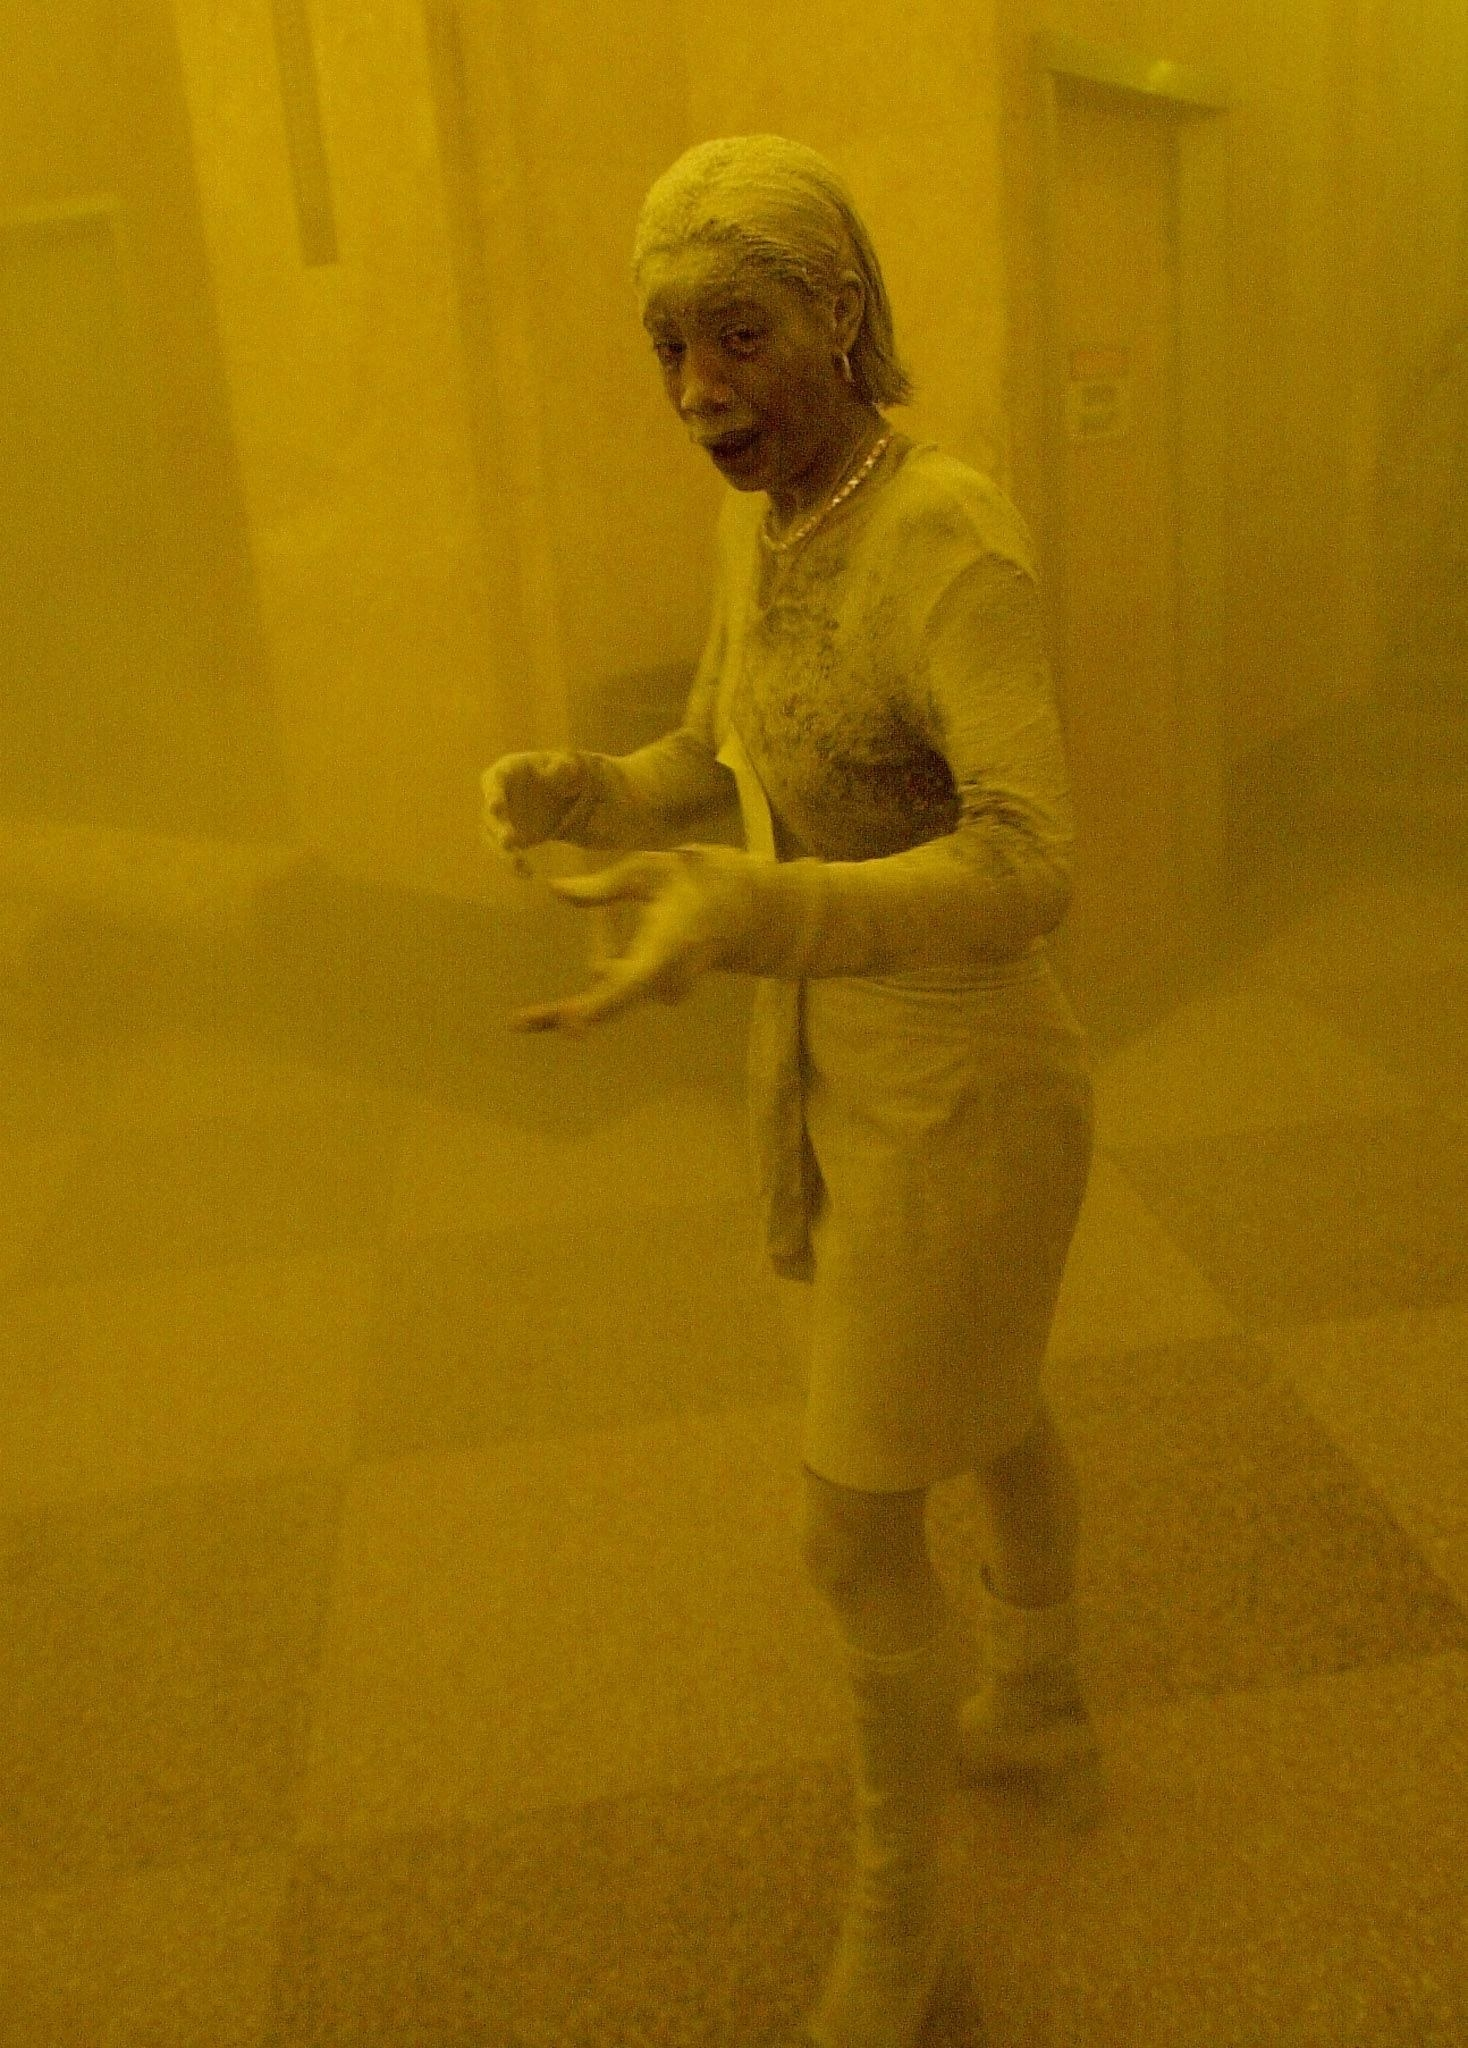 A woman completely covered in ash and in apparent distress in a building lobby that is yellow and hazy from the ash and smoke